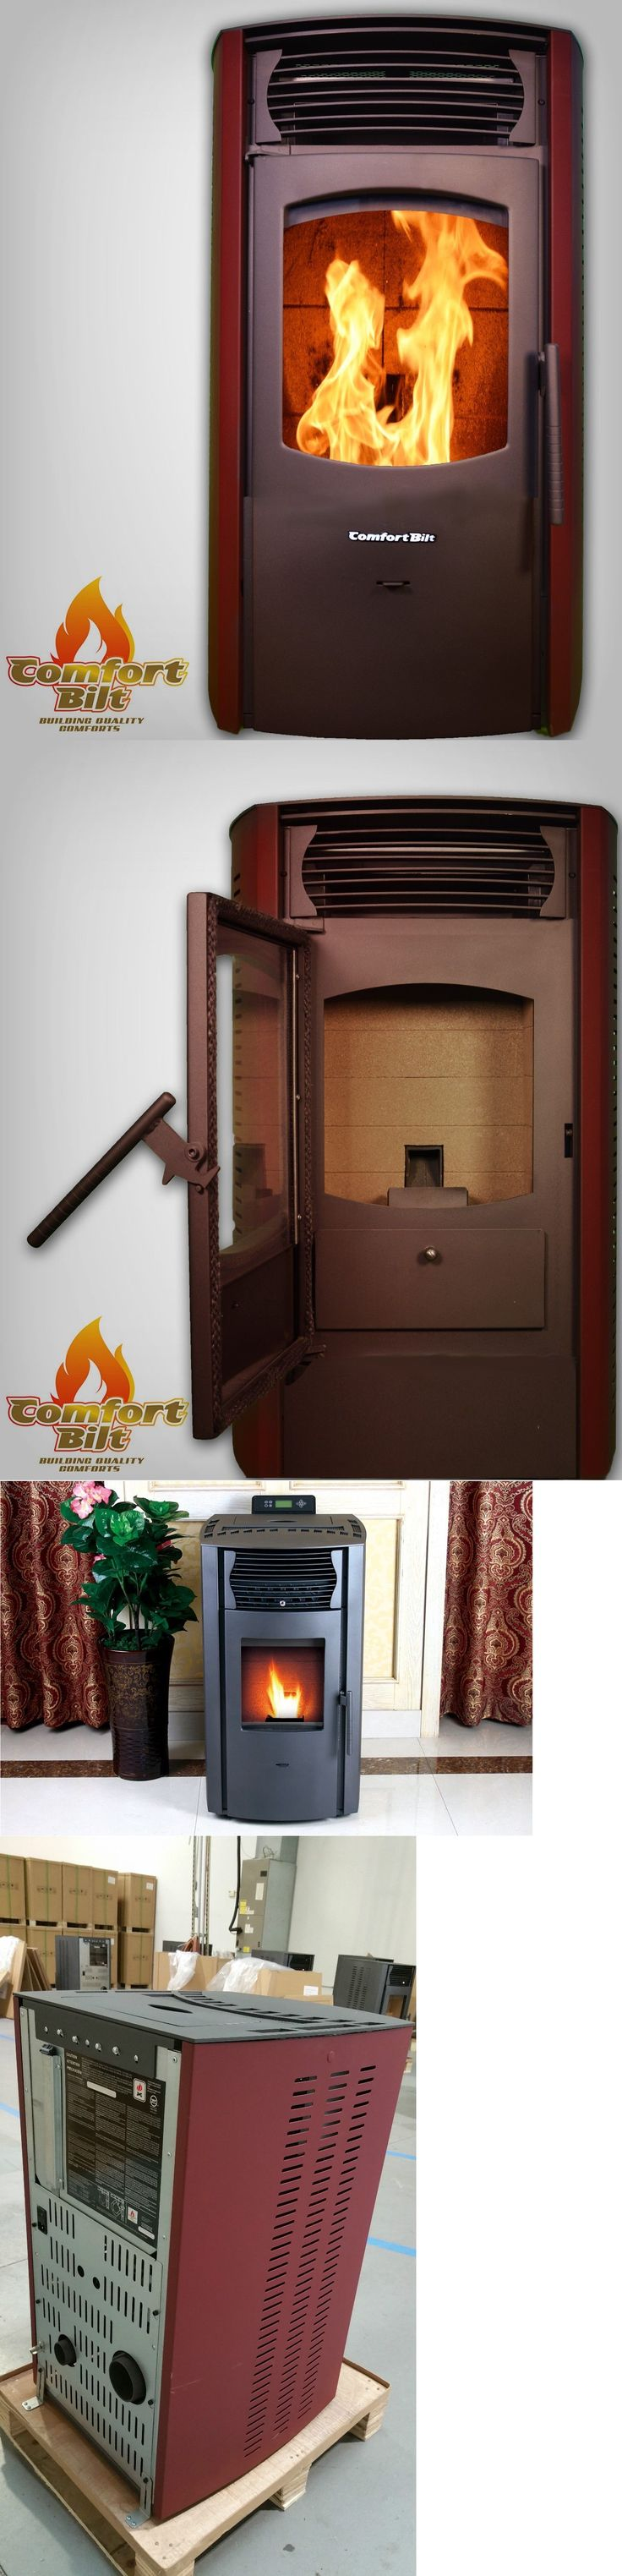 Furnaces and Heating Systems 41987: Comfortbilt Pellet Stove Fireplace 42000Btu -Hp50-Burgundy-Special Price! -> BUY IT NOW ONLY: $1399 on eBay!